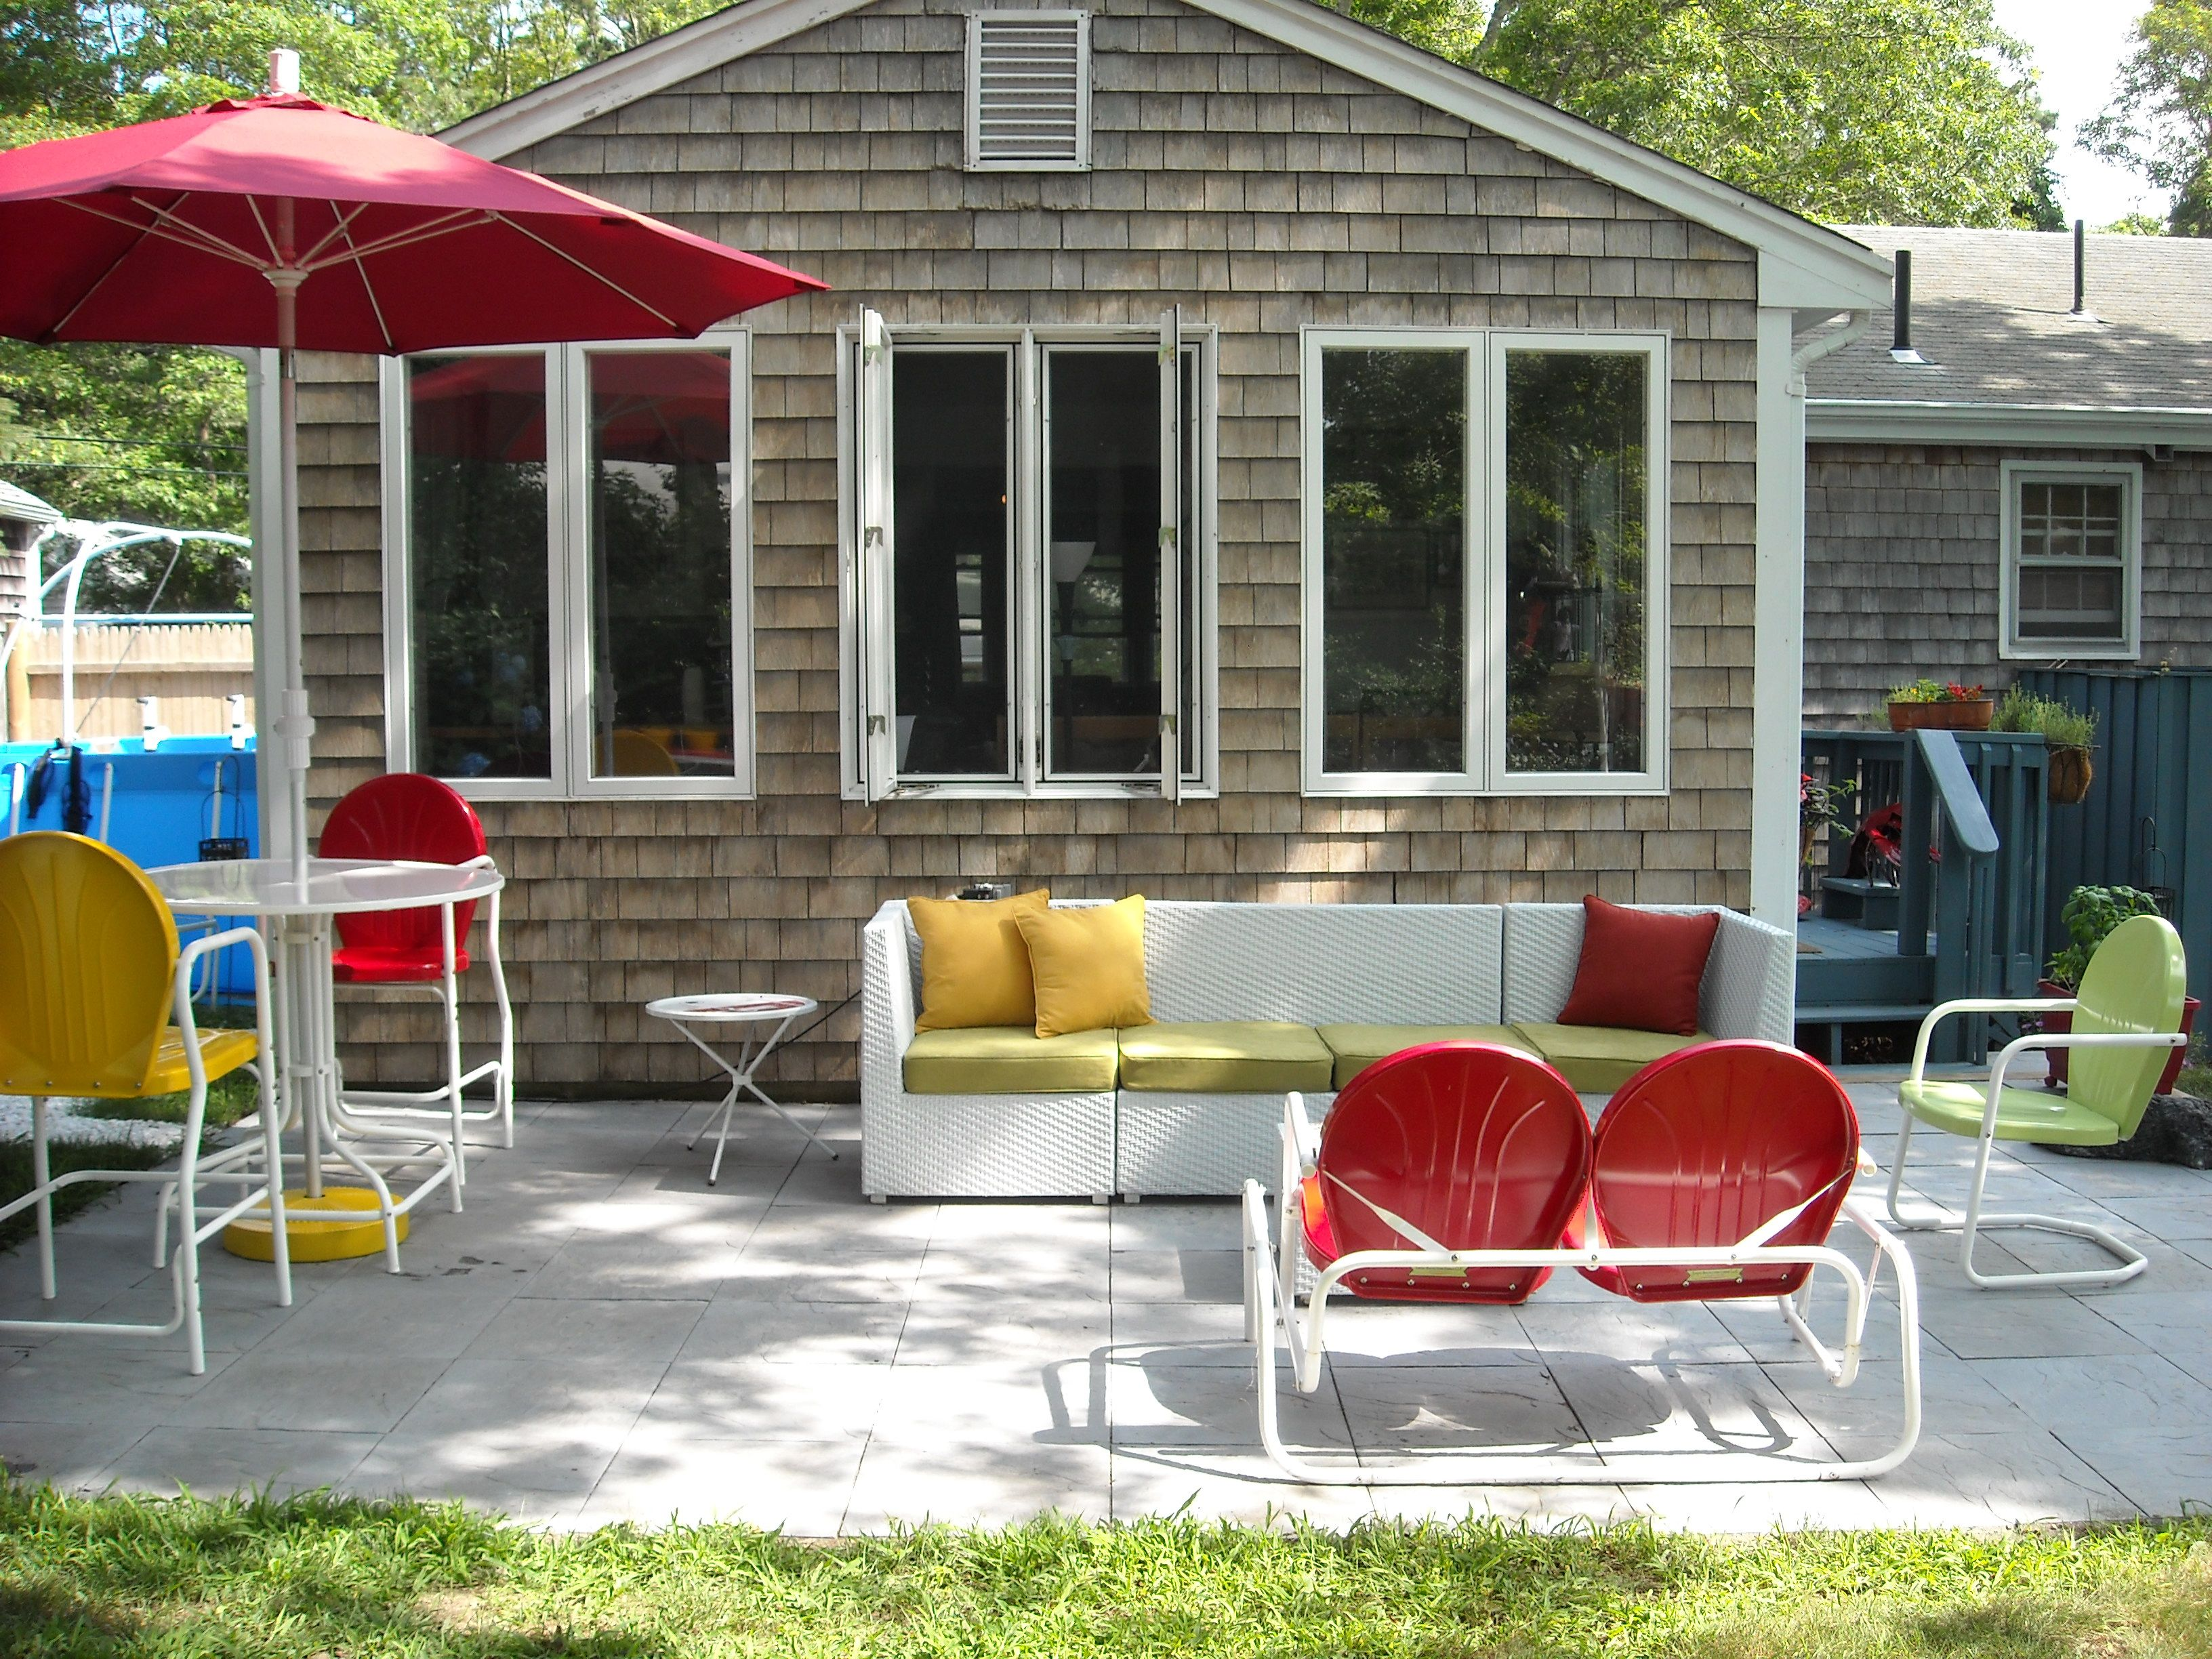 Whole Patio Showing Torrans Manufacturing Retro Metal Bar Table And Chairs,  Chair And Glider Available